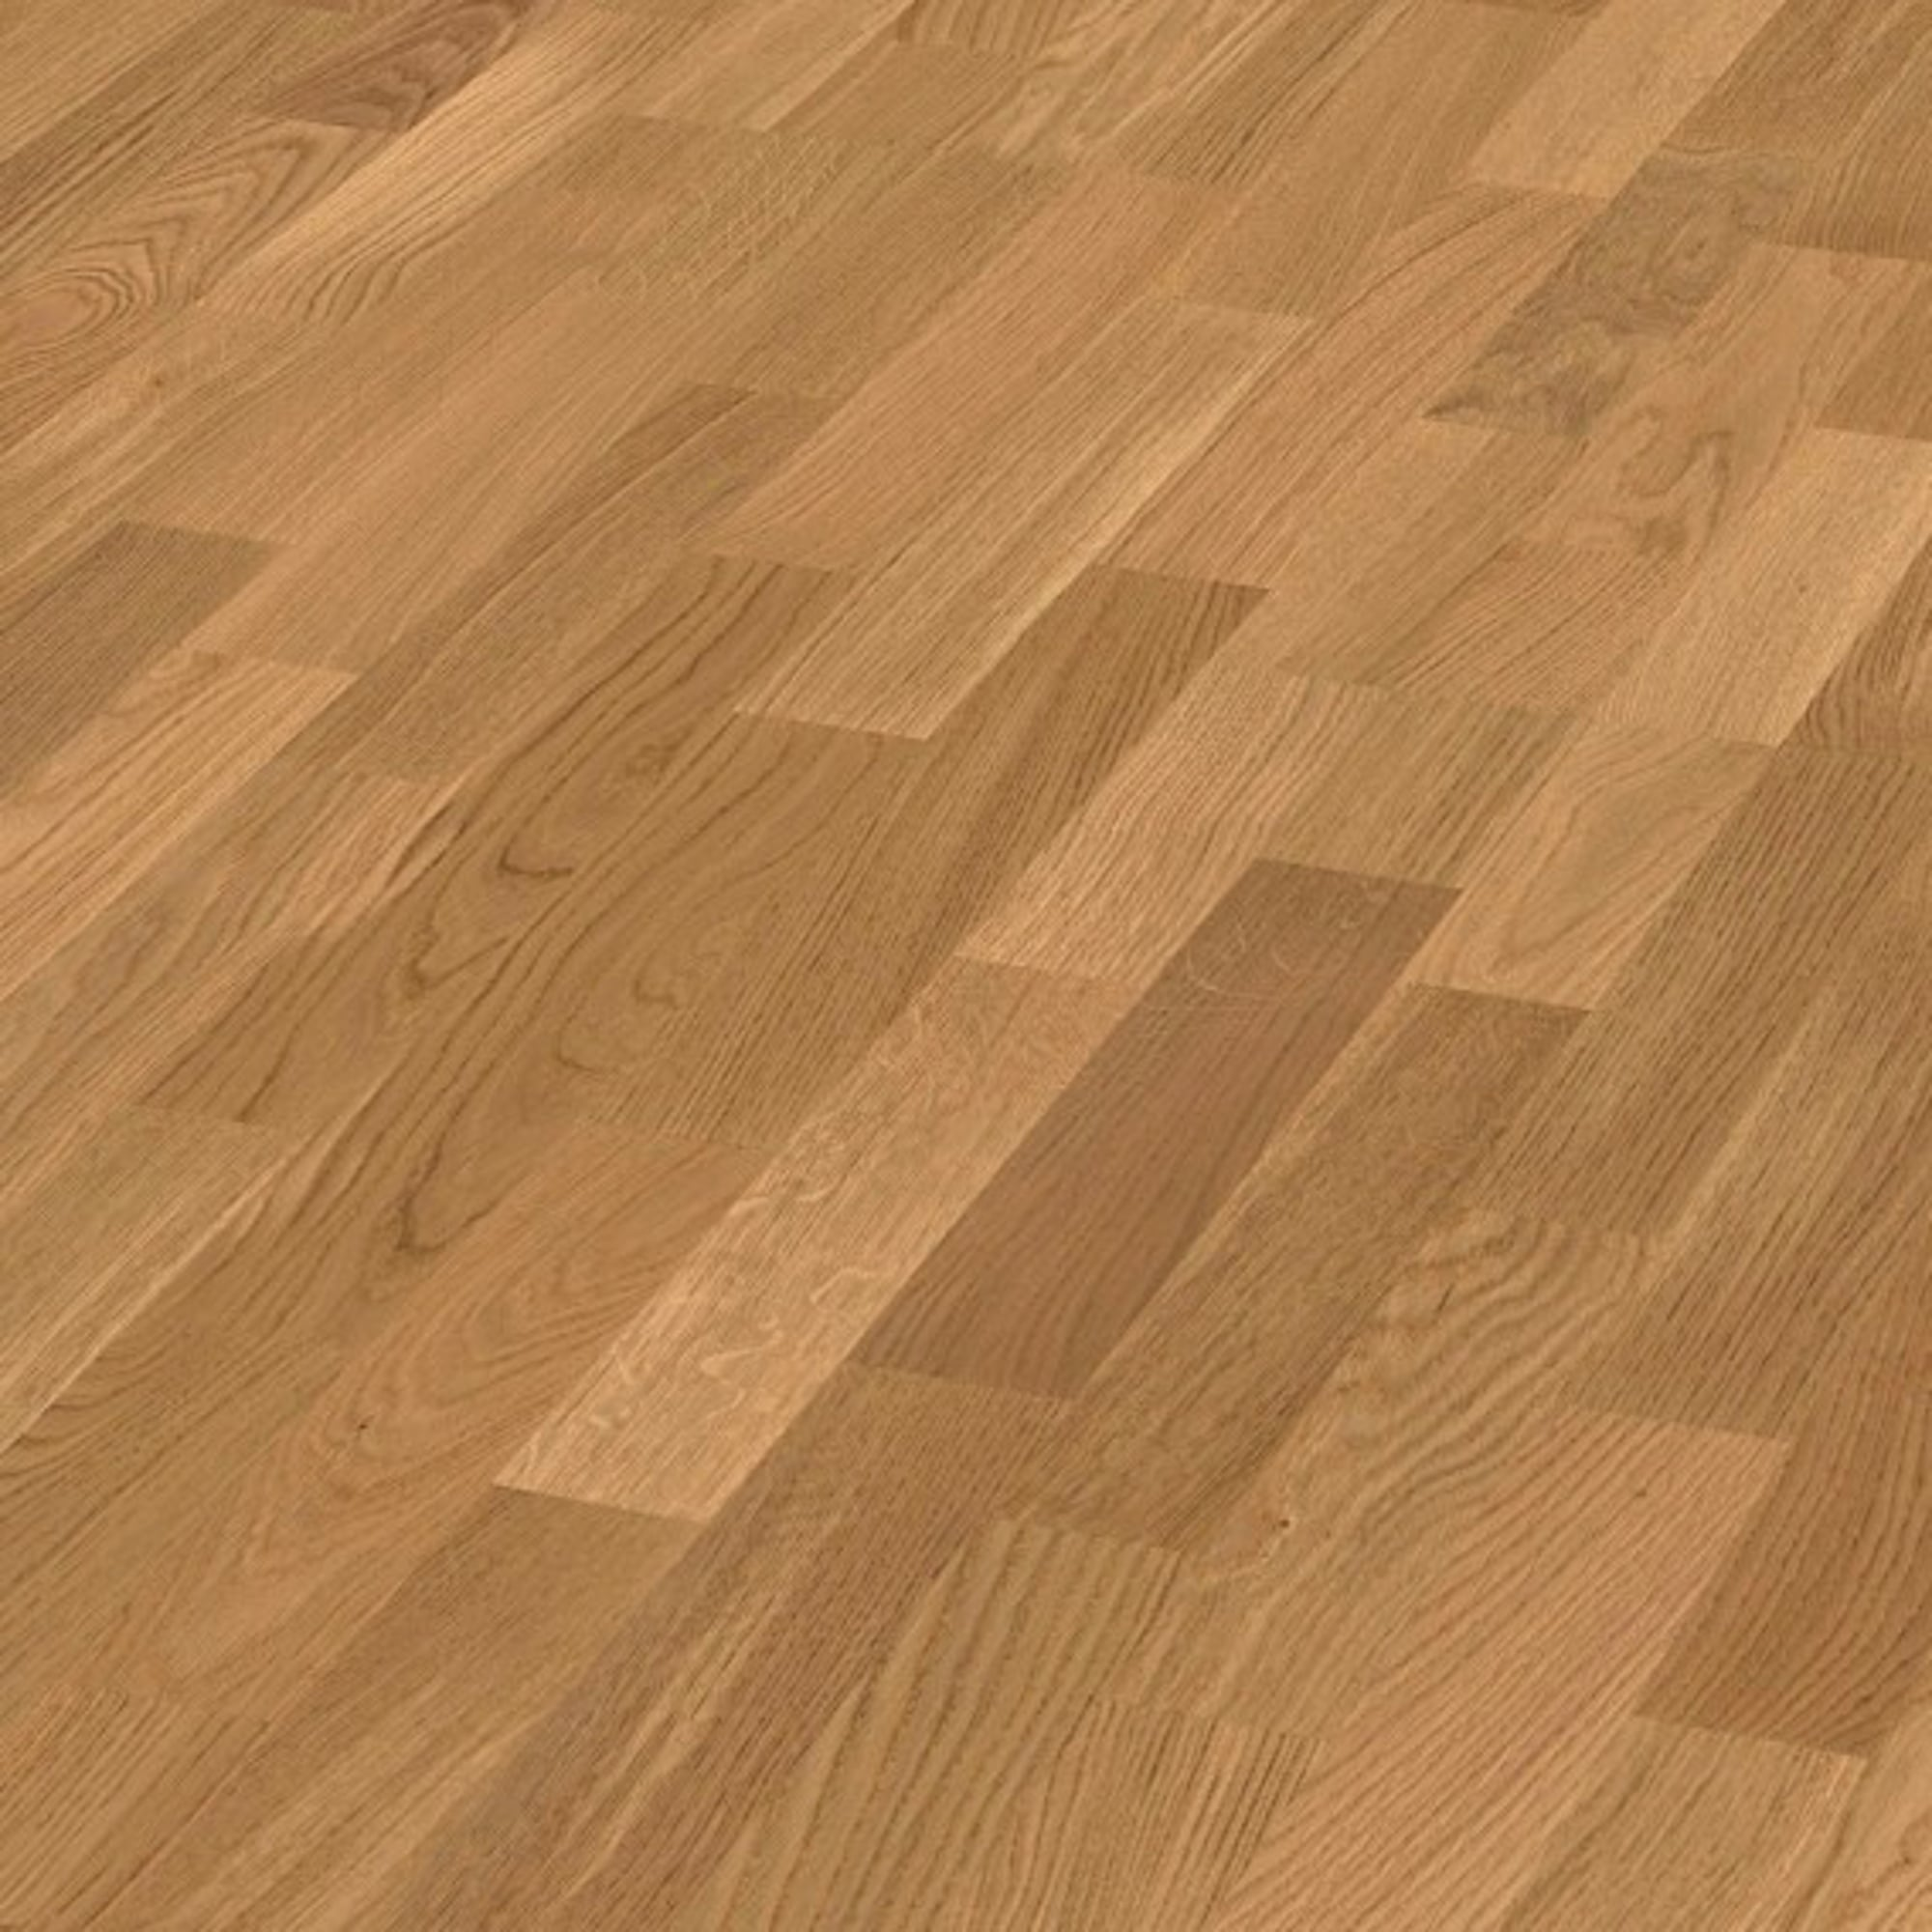 Wood flooring pc200 3 strip 13x200mm harminous engineered for Engineered woods